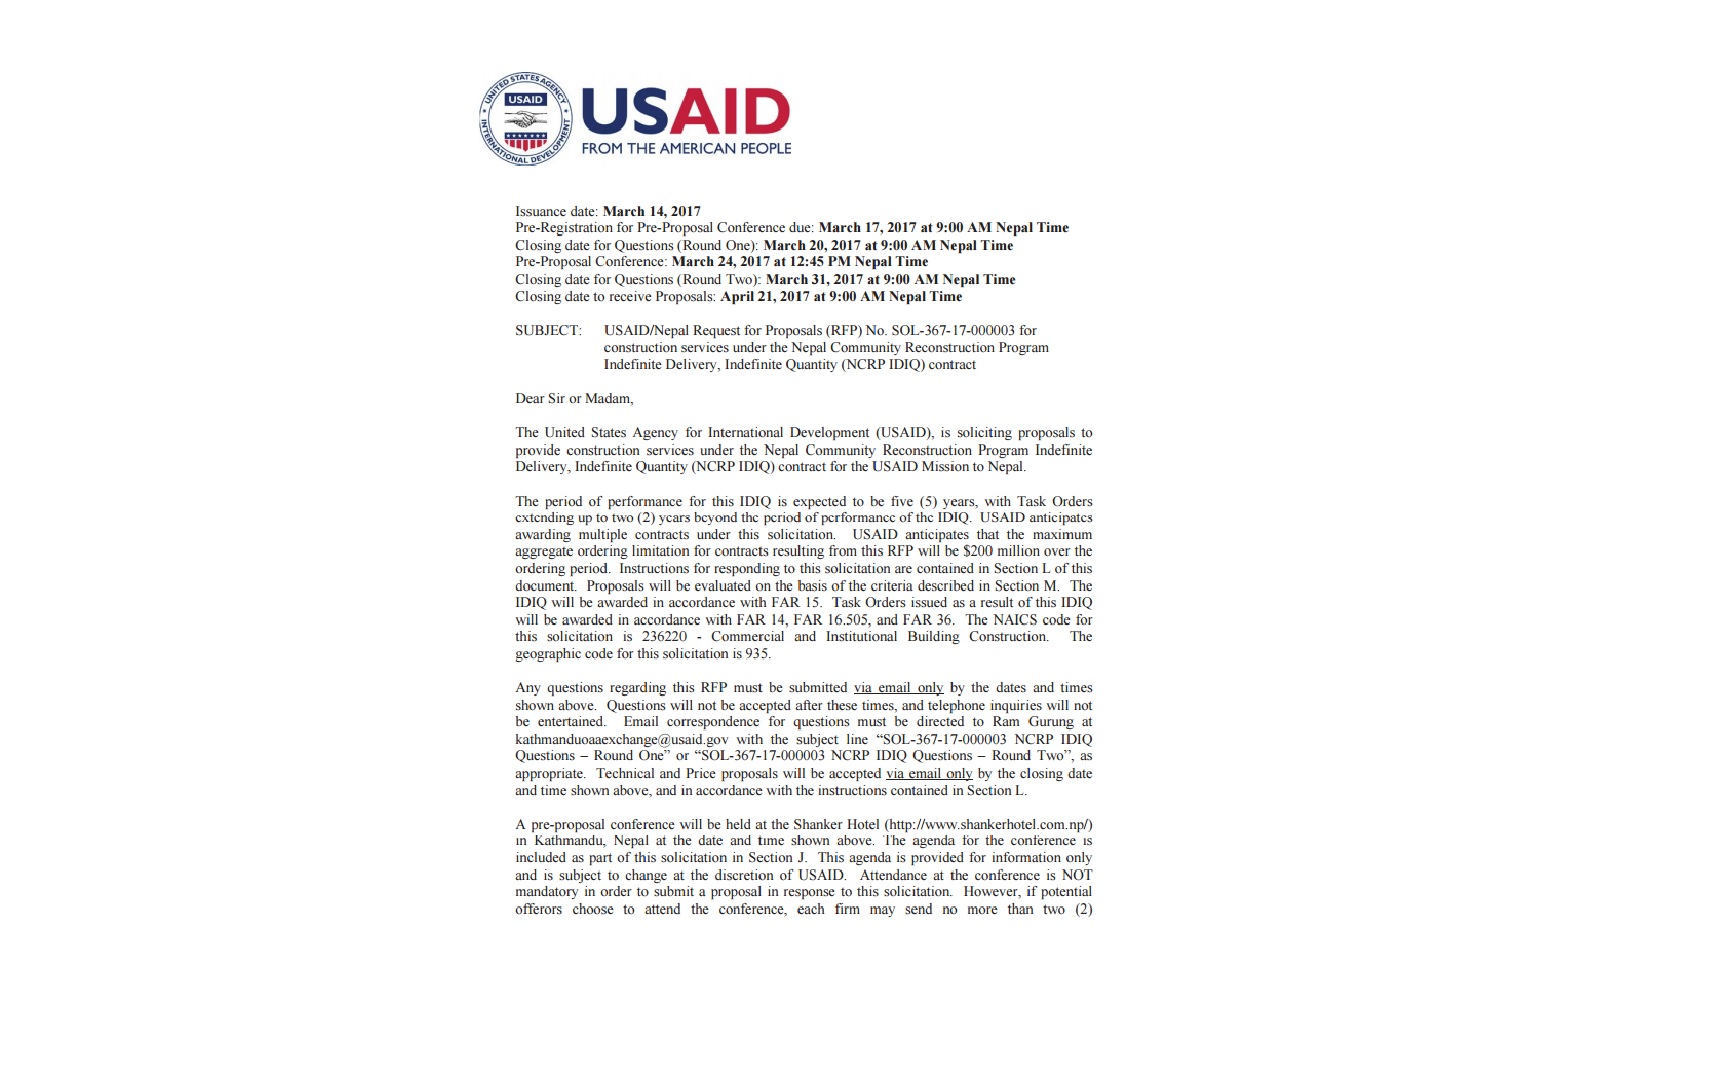 USAID/Nepal Request for Proposals (RFP) No. SOL-367-17-000003 for construction services under the Nepal Community Reconstruction Program Indefinite Delivery, Indefinite Quantity (NCRP IDIQ) contract